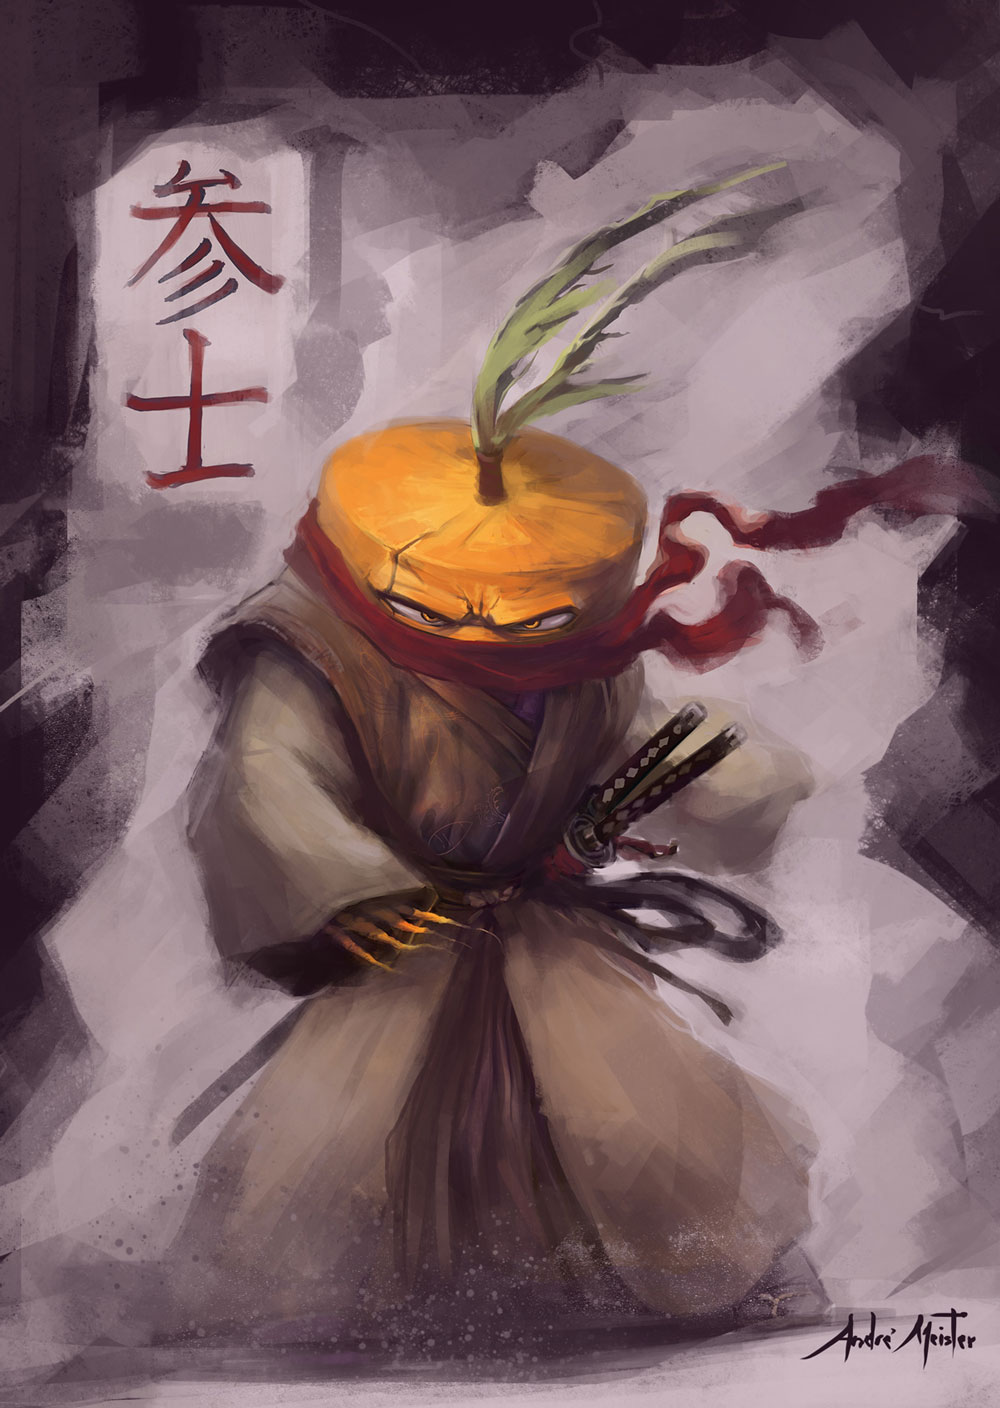 The Samurai... Carrot